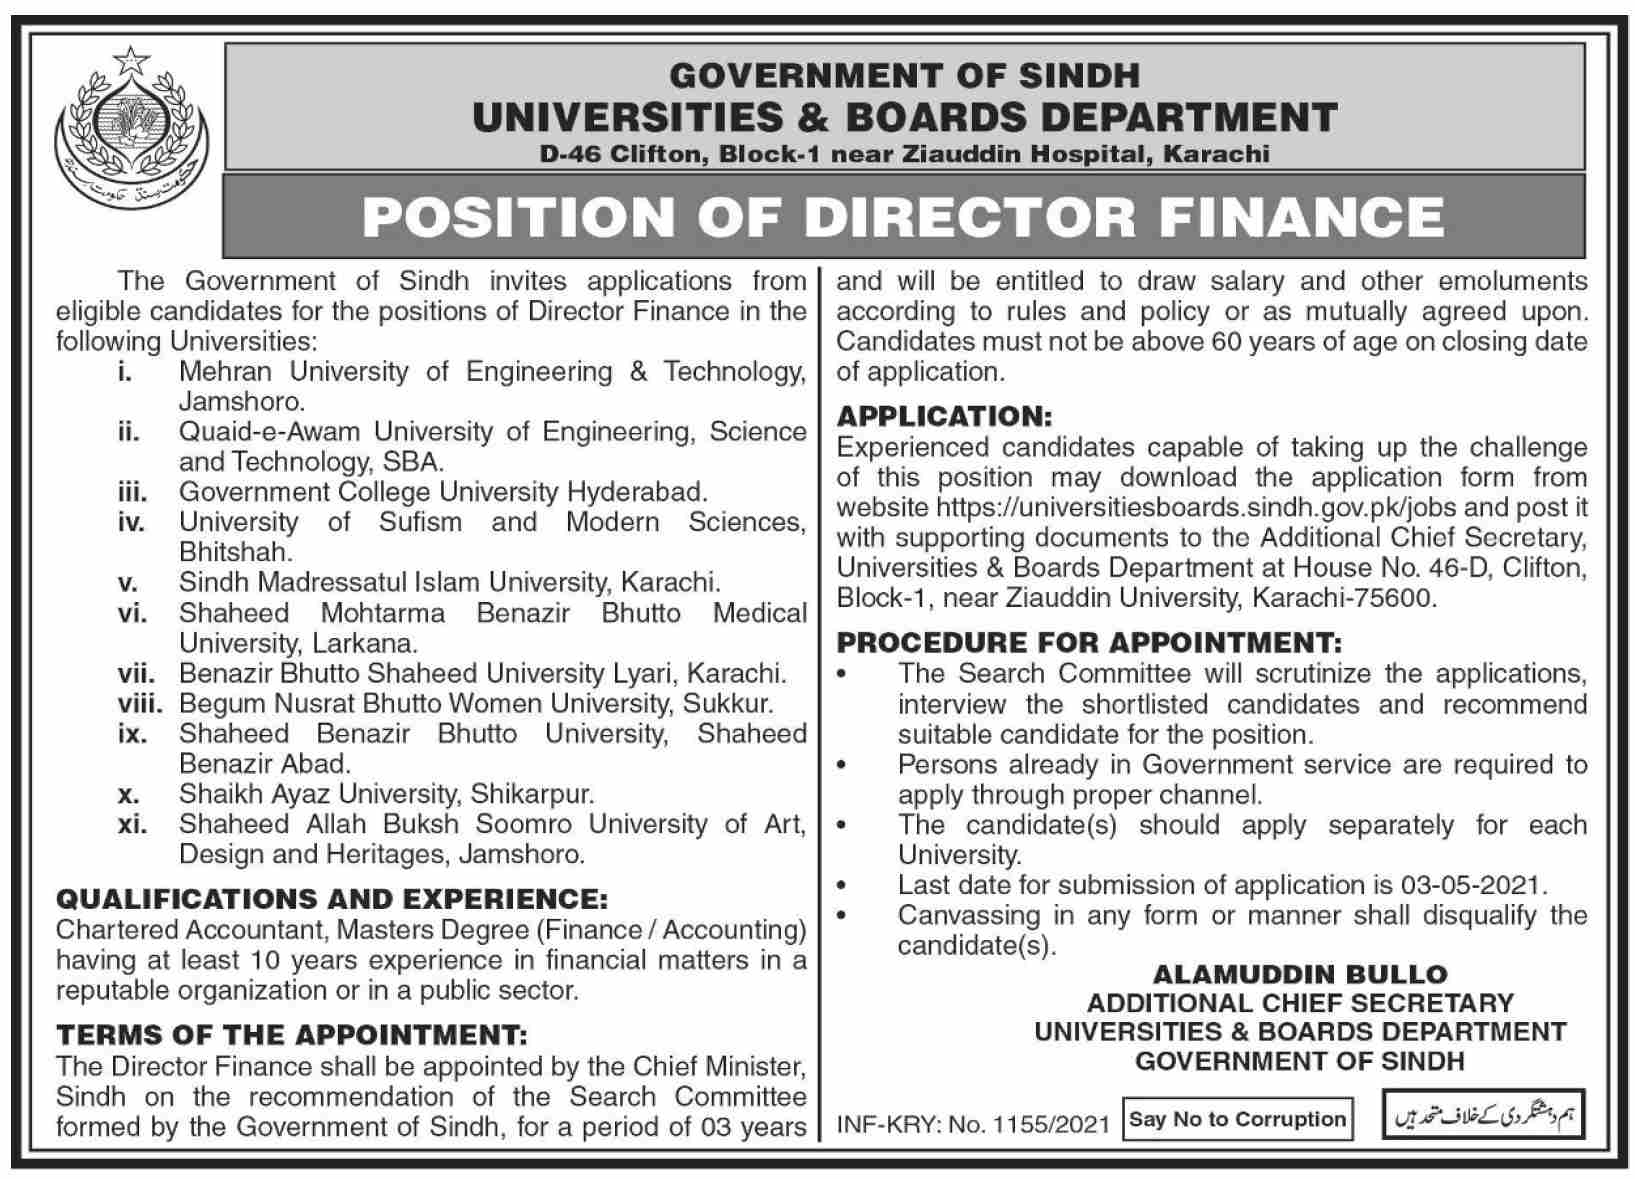 Government of Sindh - Universities & Boards Department Jobs April 2021